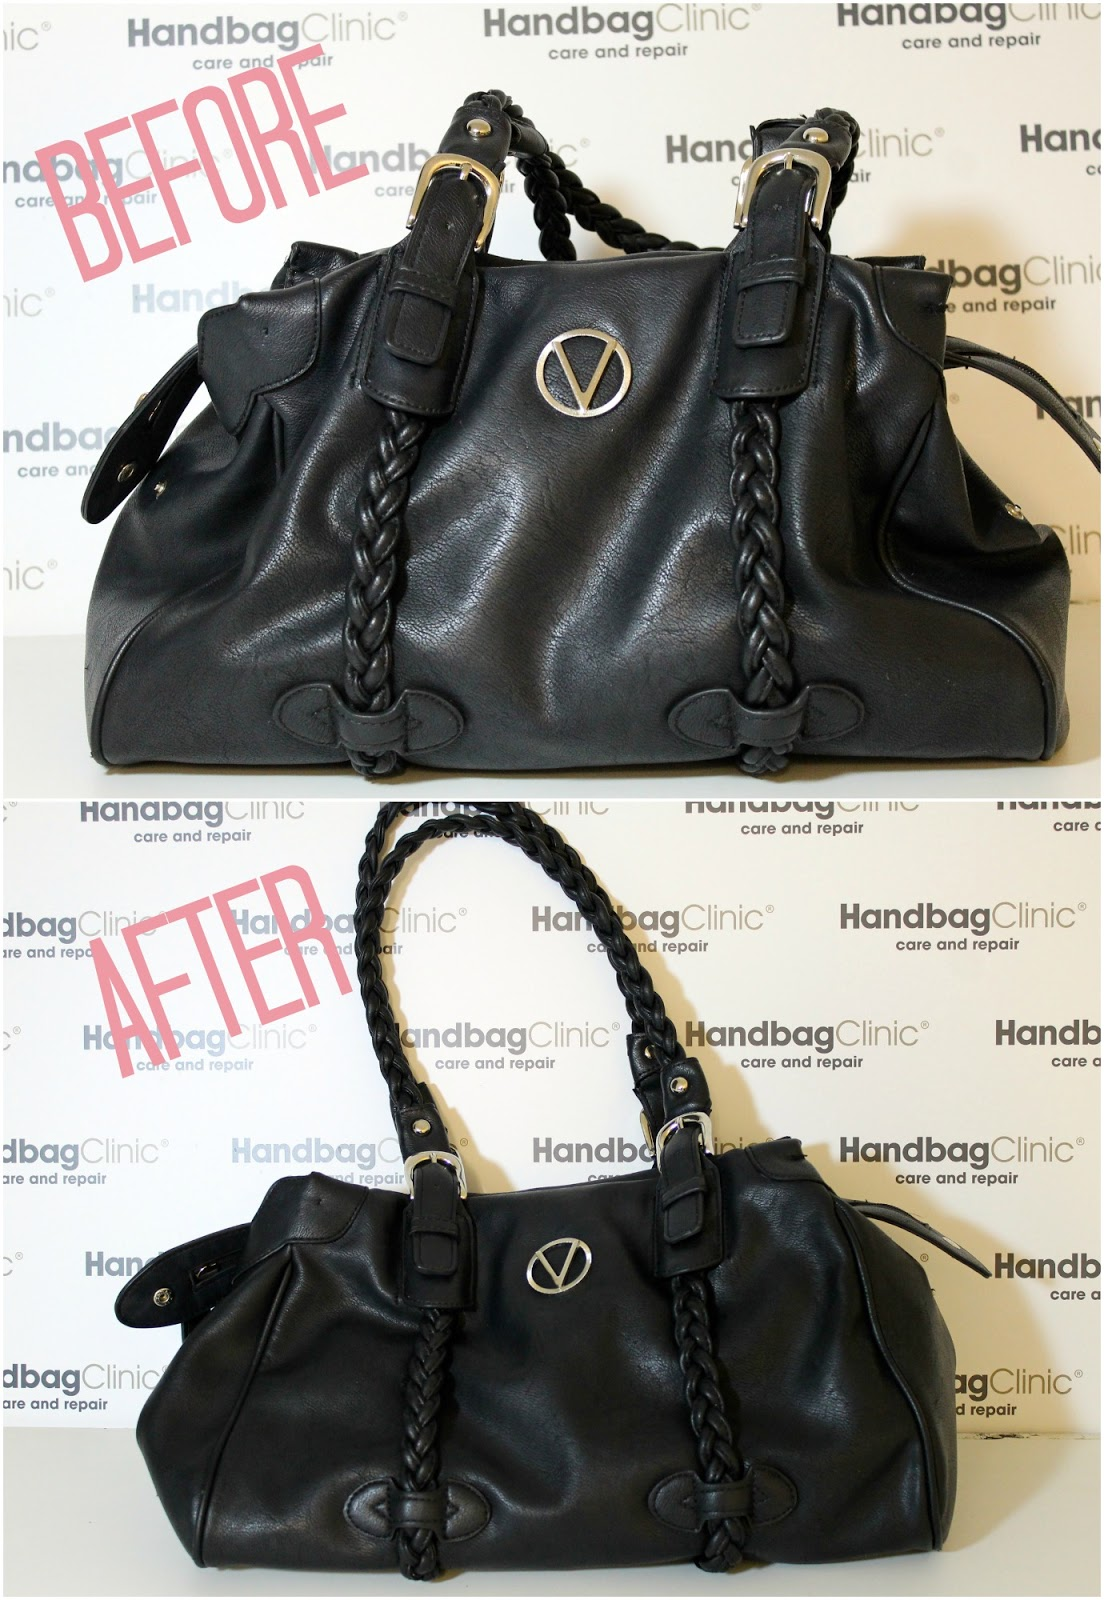 handbag clinic before after